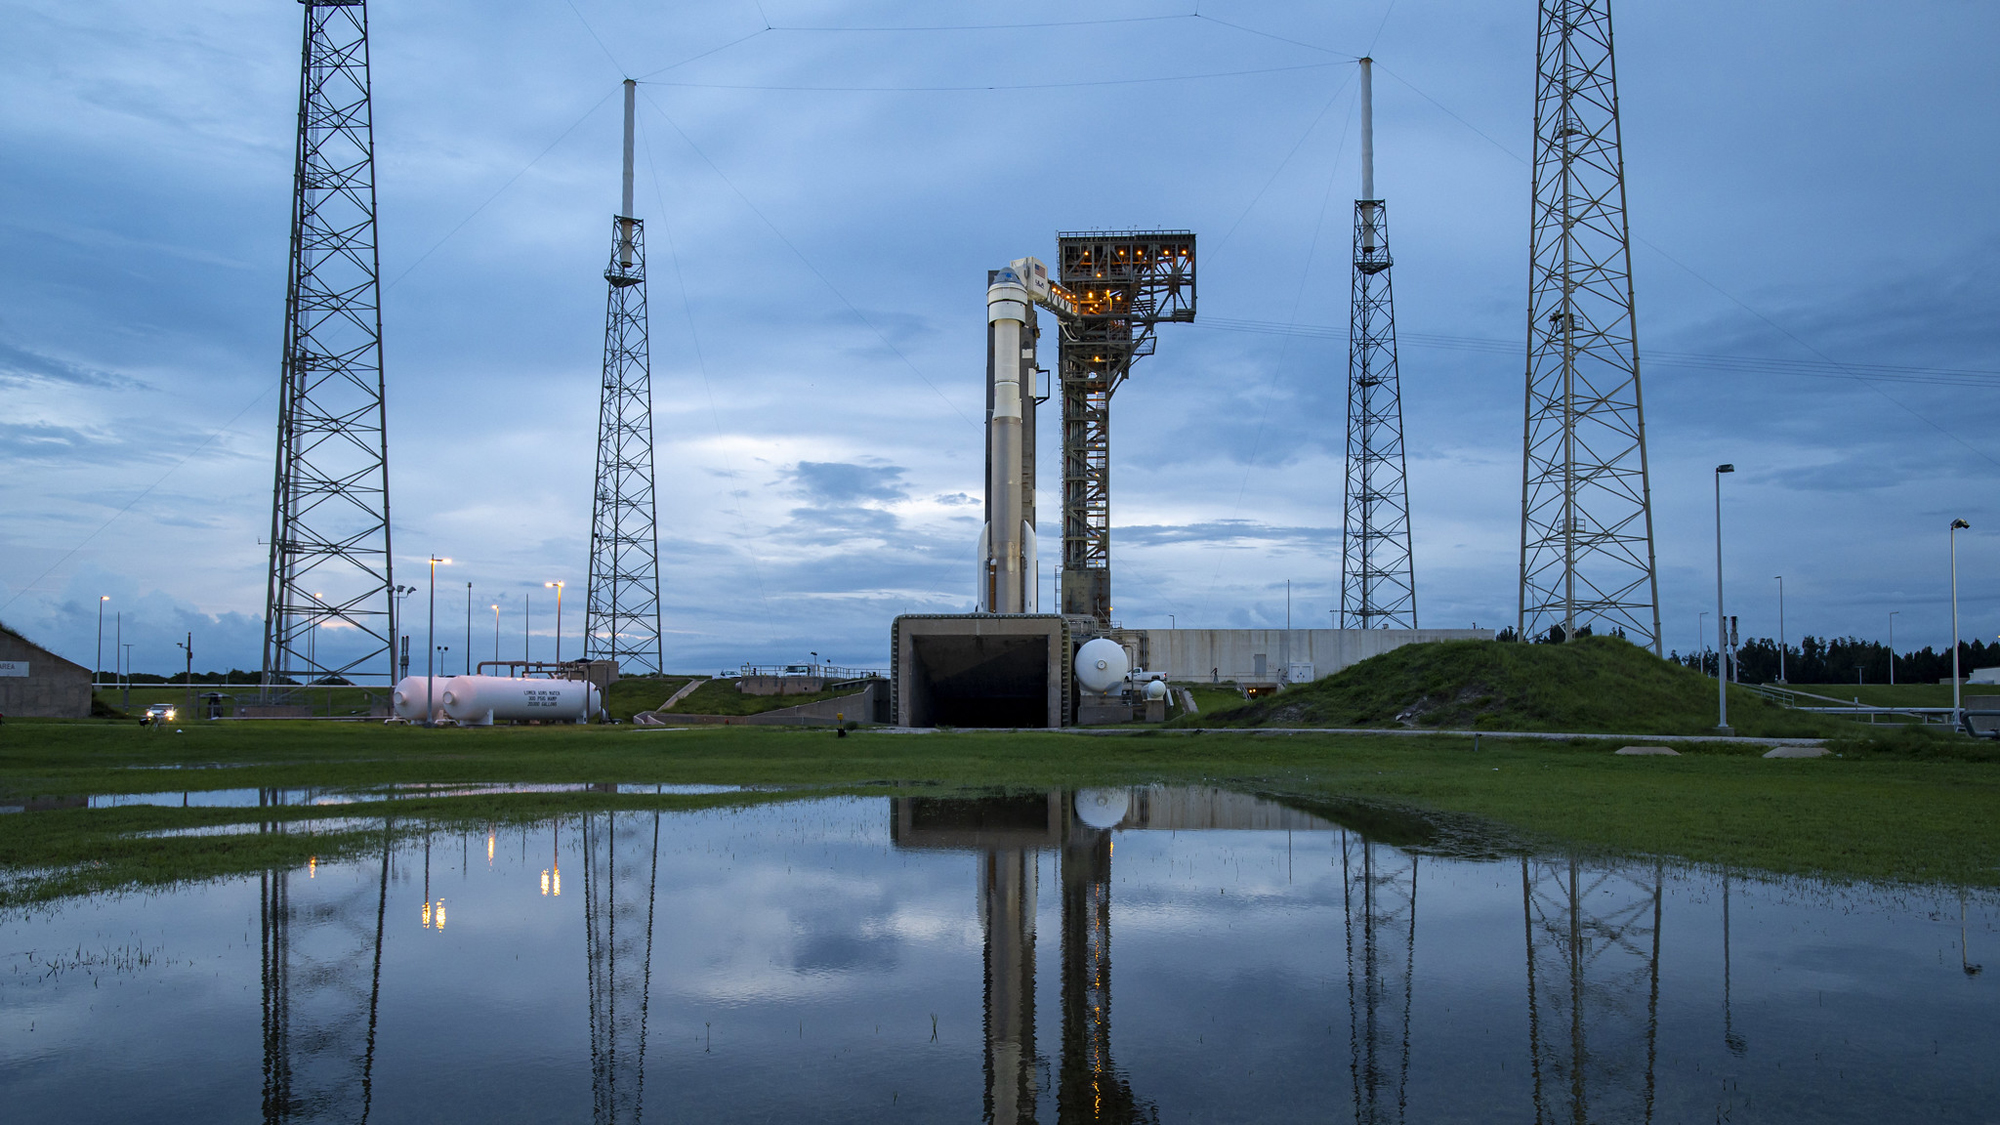 The United Launch Alliance Atlas V rocket and Boeing's Starliner spacecraft sit on Space Launch Complex 41 at Cape Canaveral Space Force Station at sunset on Aug. 2, 2021 for the OFT-2 mission to the International Space Station.